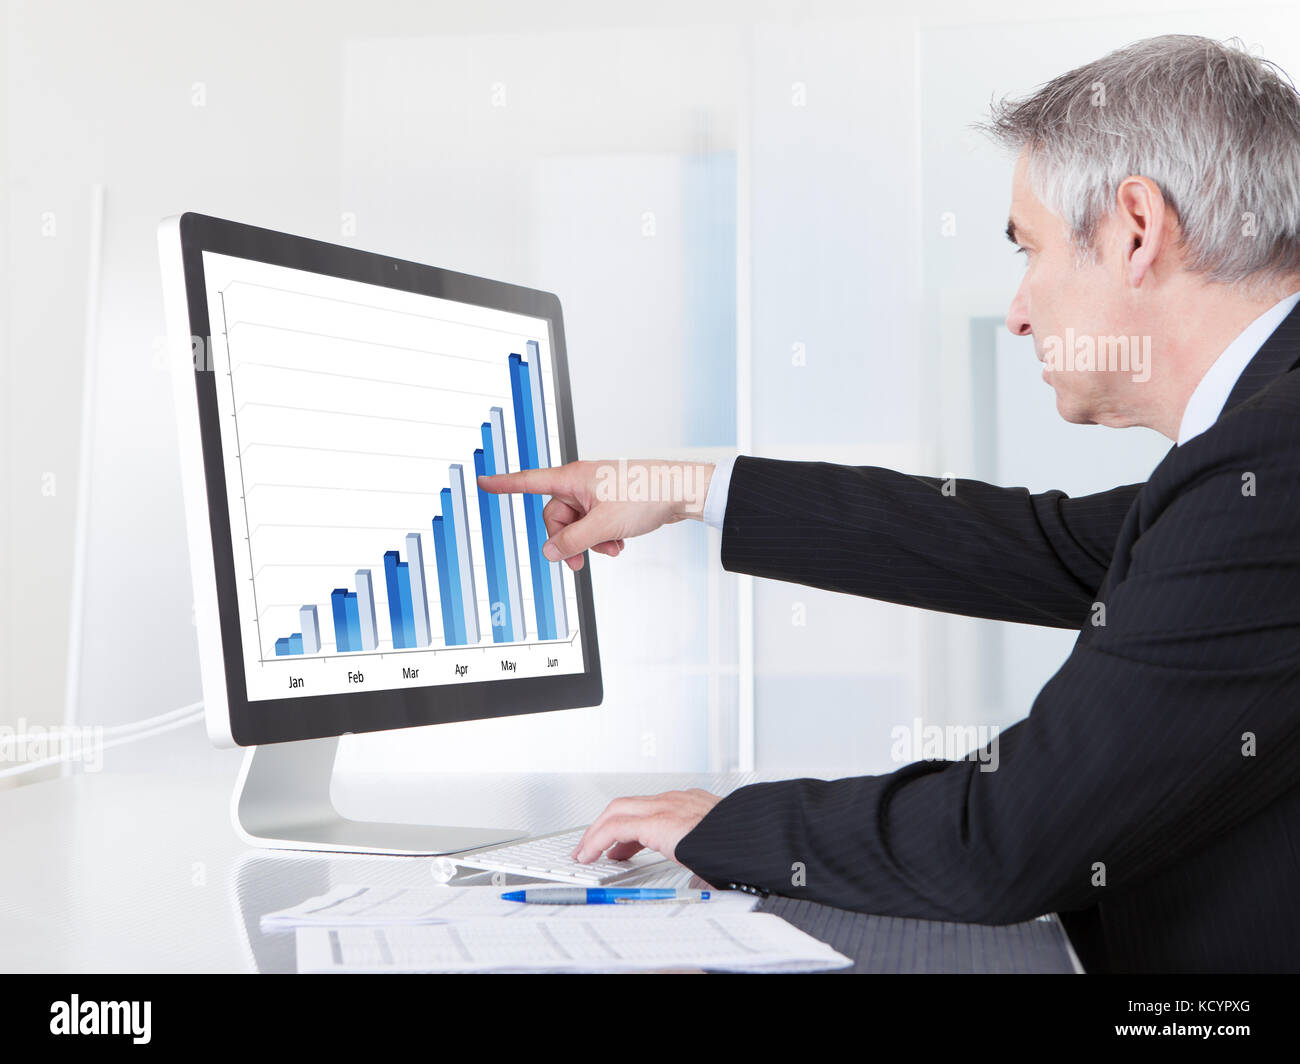 Cost Report Photos & Cost Report Images - Alamy